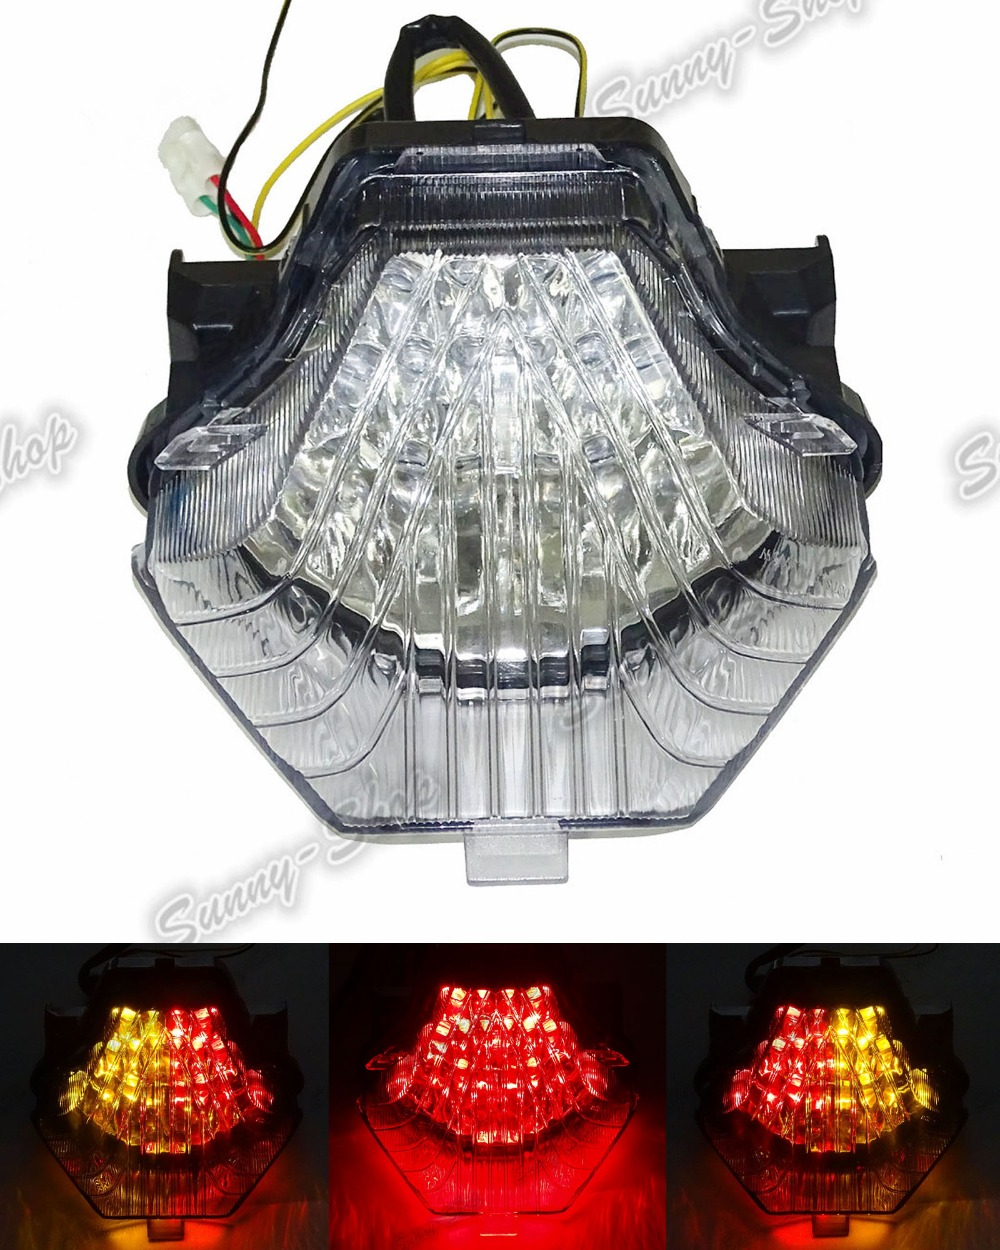 Motorcycle Parts E-Mark Rear Tail Light Brake Turn Signals Integrated Led Light Clear For 2013 2014 2015 2016 Yamaha YZF R3 R25 aftermarket free shipping motorcycle parts led tail brake light turn signals for yamaha 2004 2009 fz6 fazer 600 clear